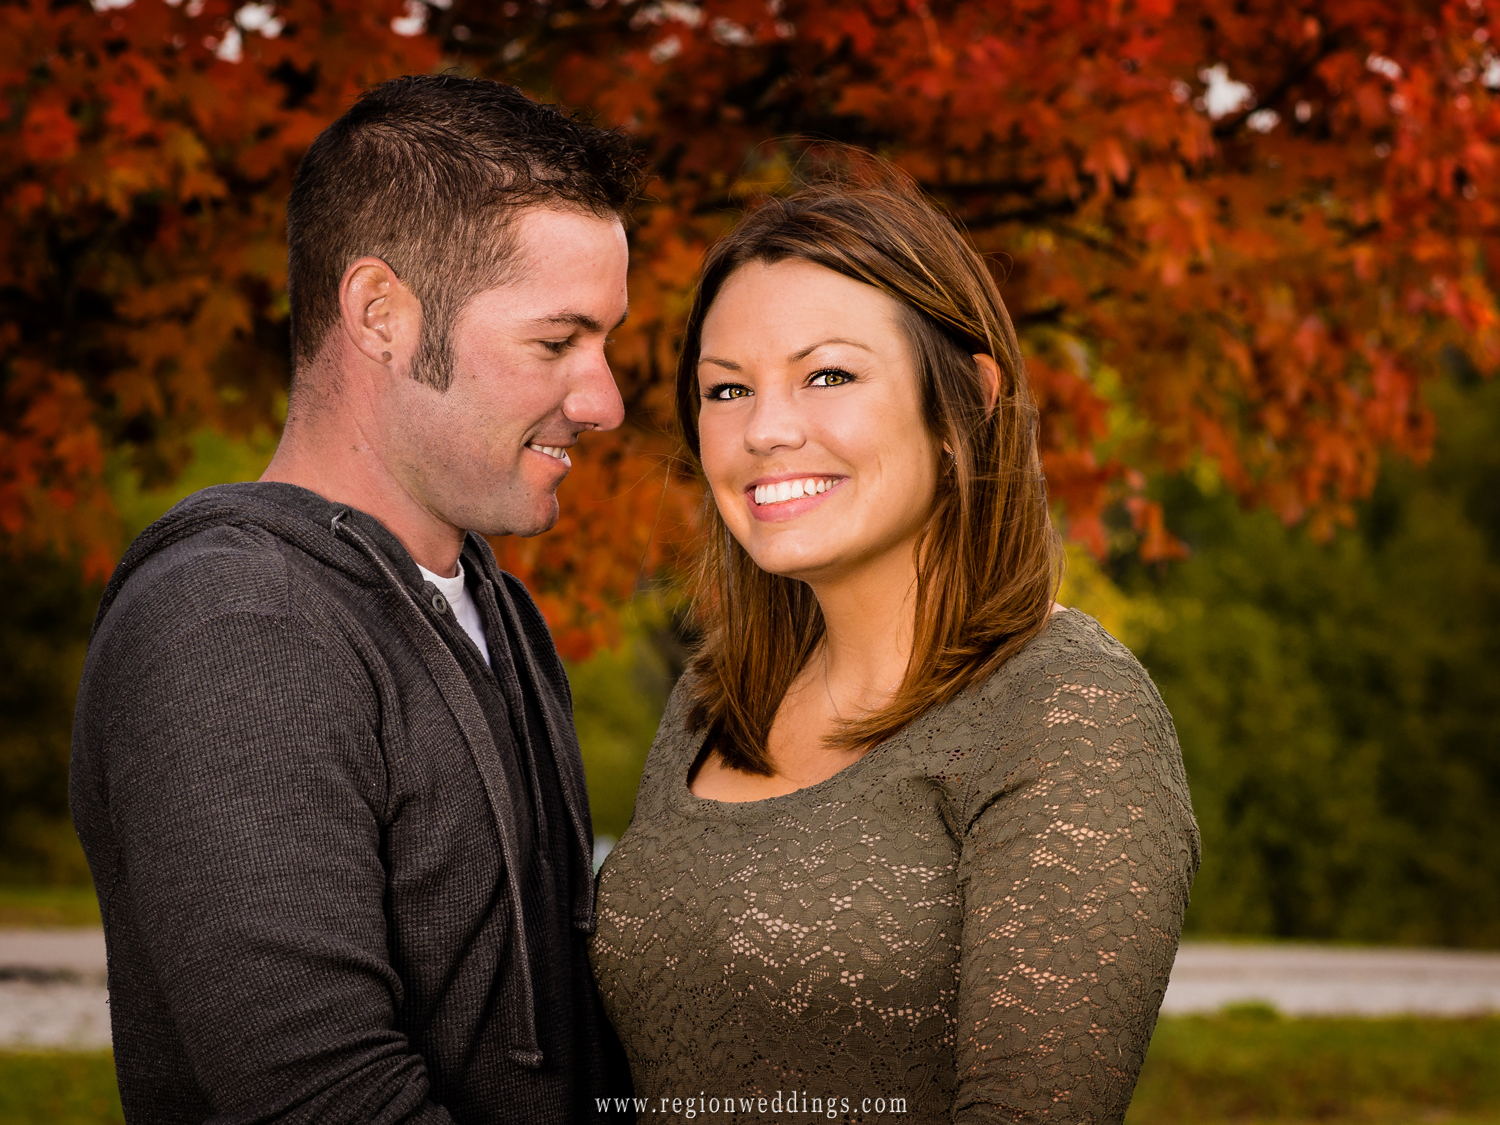 A man smiles toward his fiancé for their Fall engagement photo with a tree with bright orange leaves in the background.